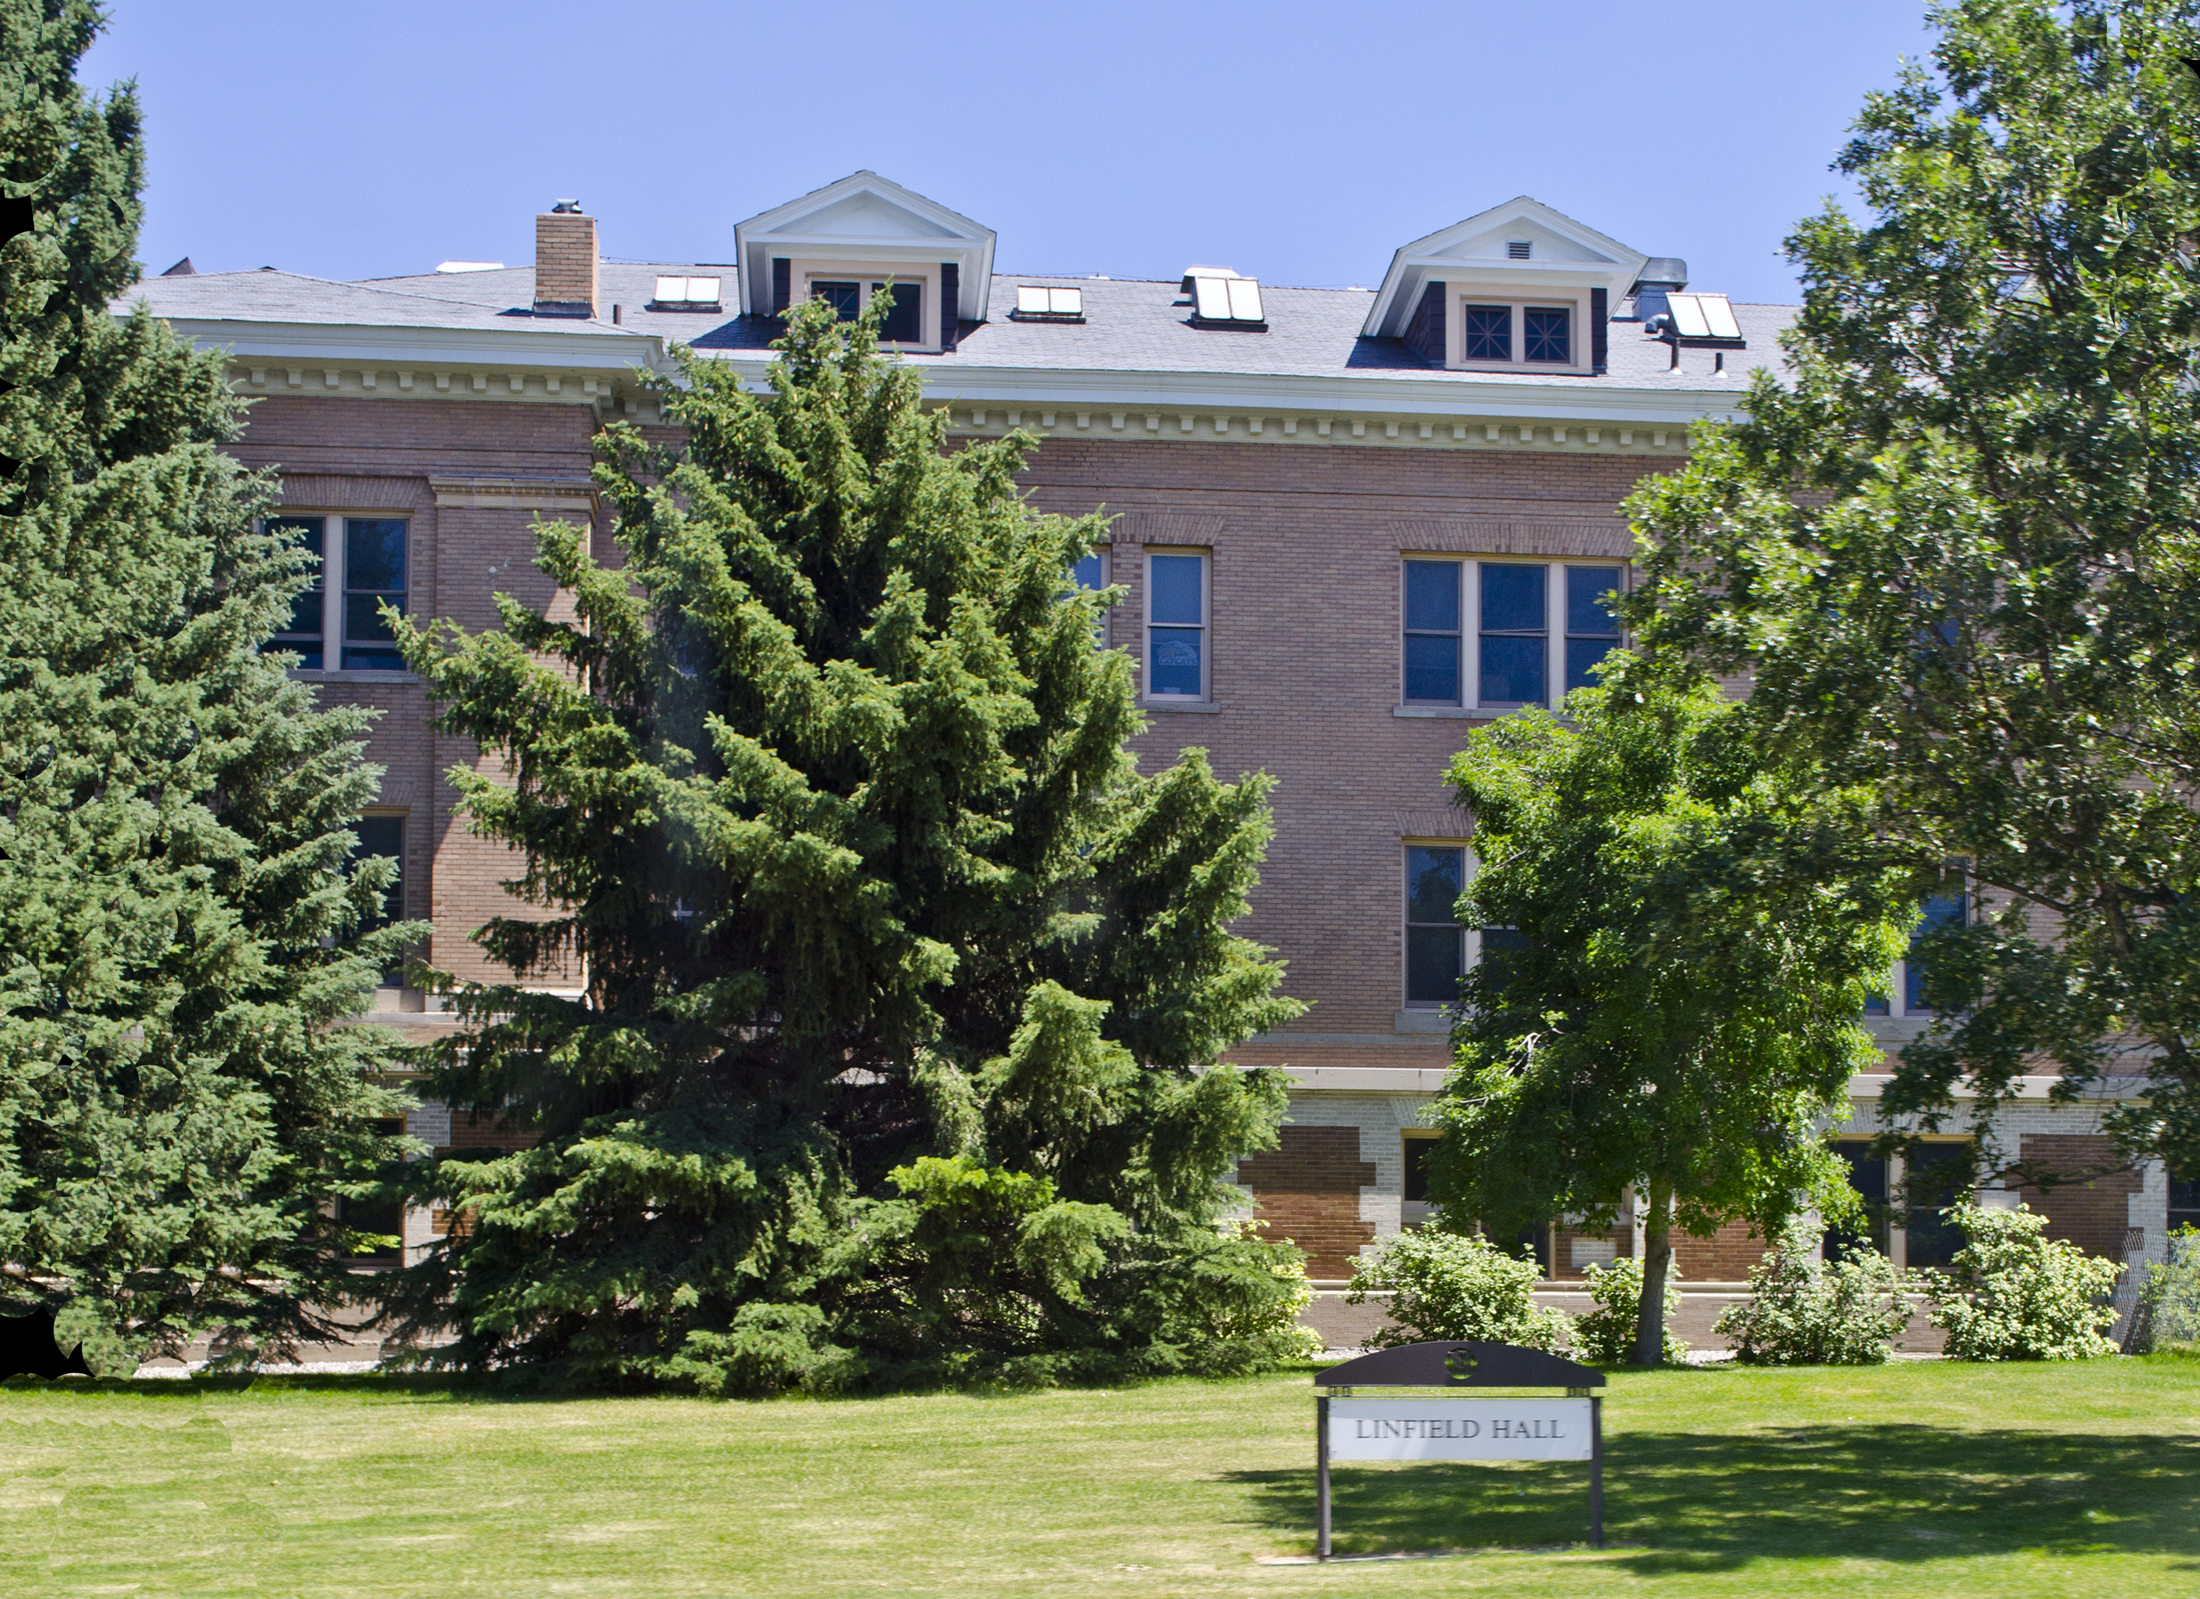 million refurbishment added an elevator, renovated bathrooms, made the building ADA accessible, and remodeled the large lecture room. As of 2013, Linfield Hall